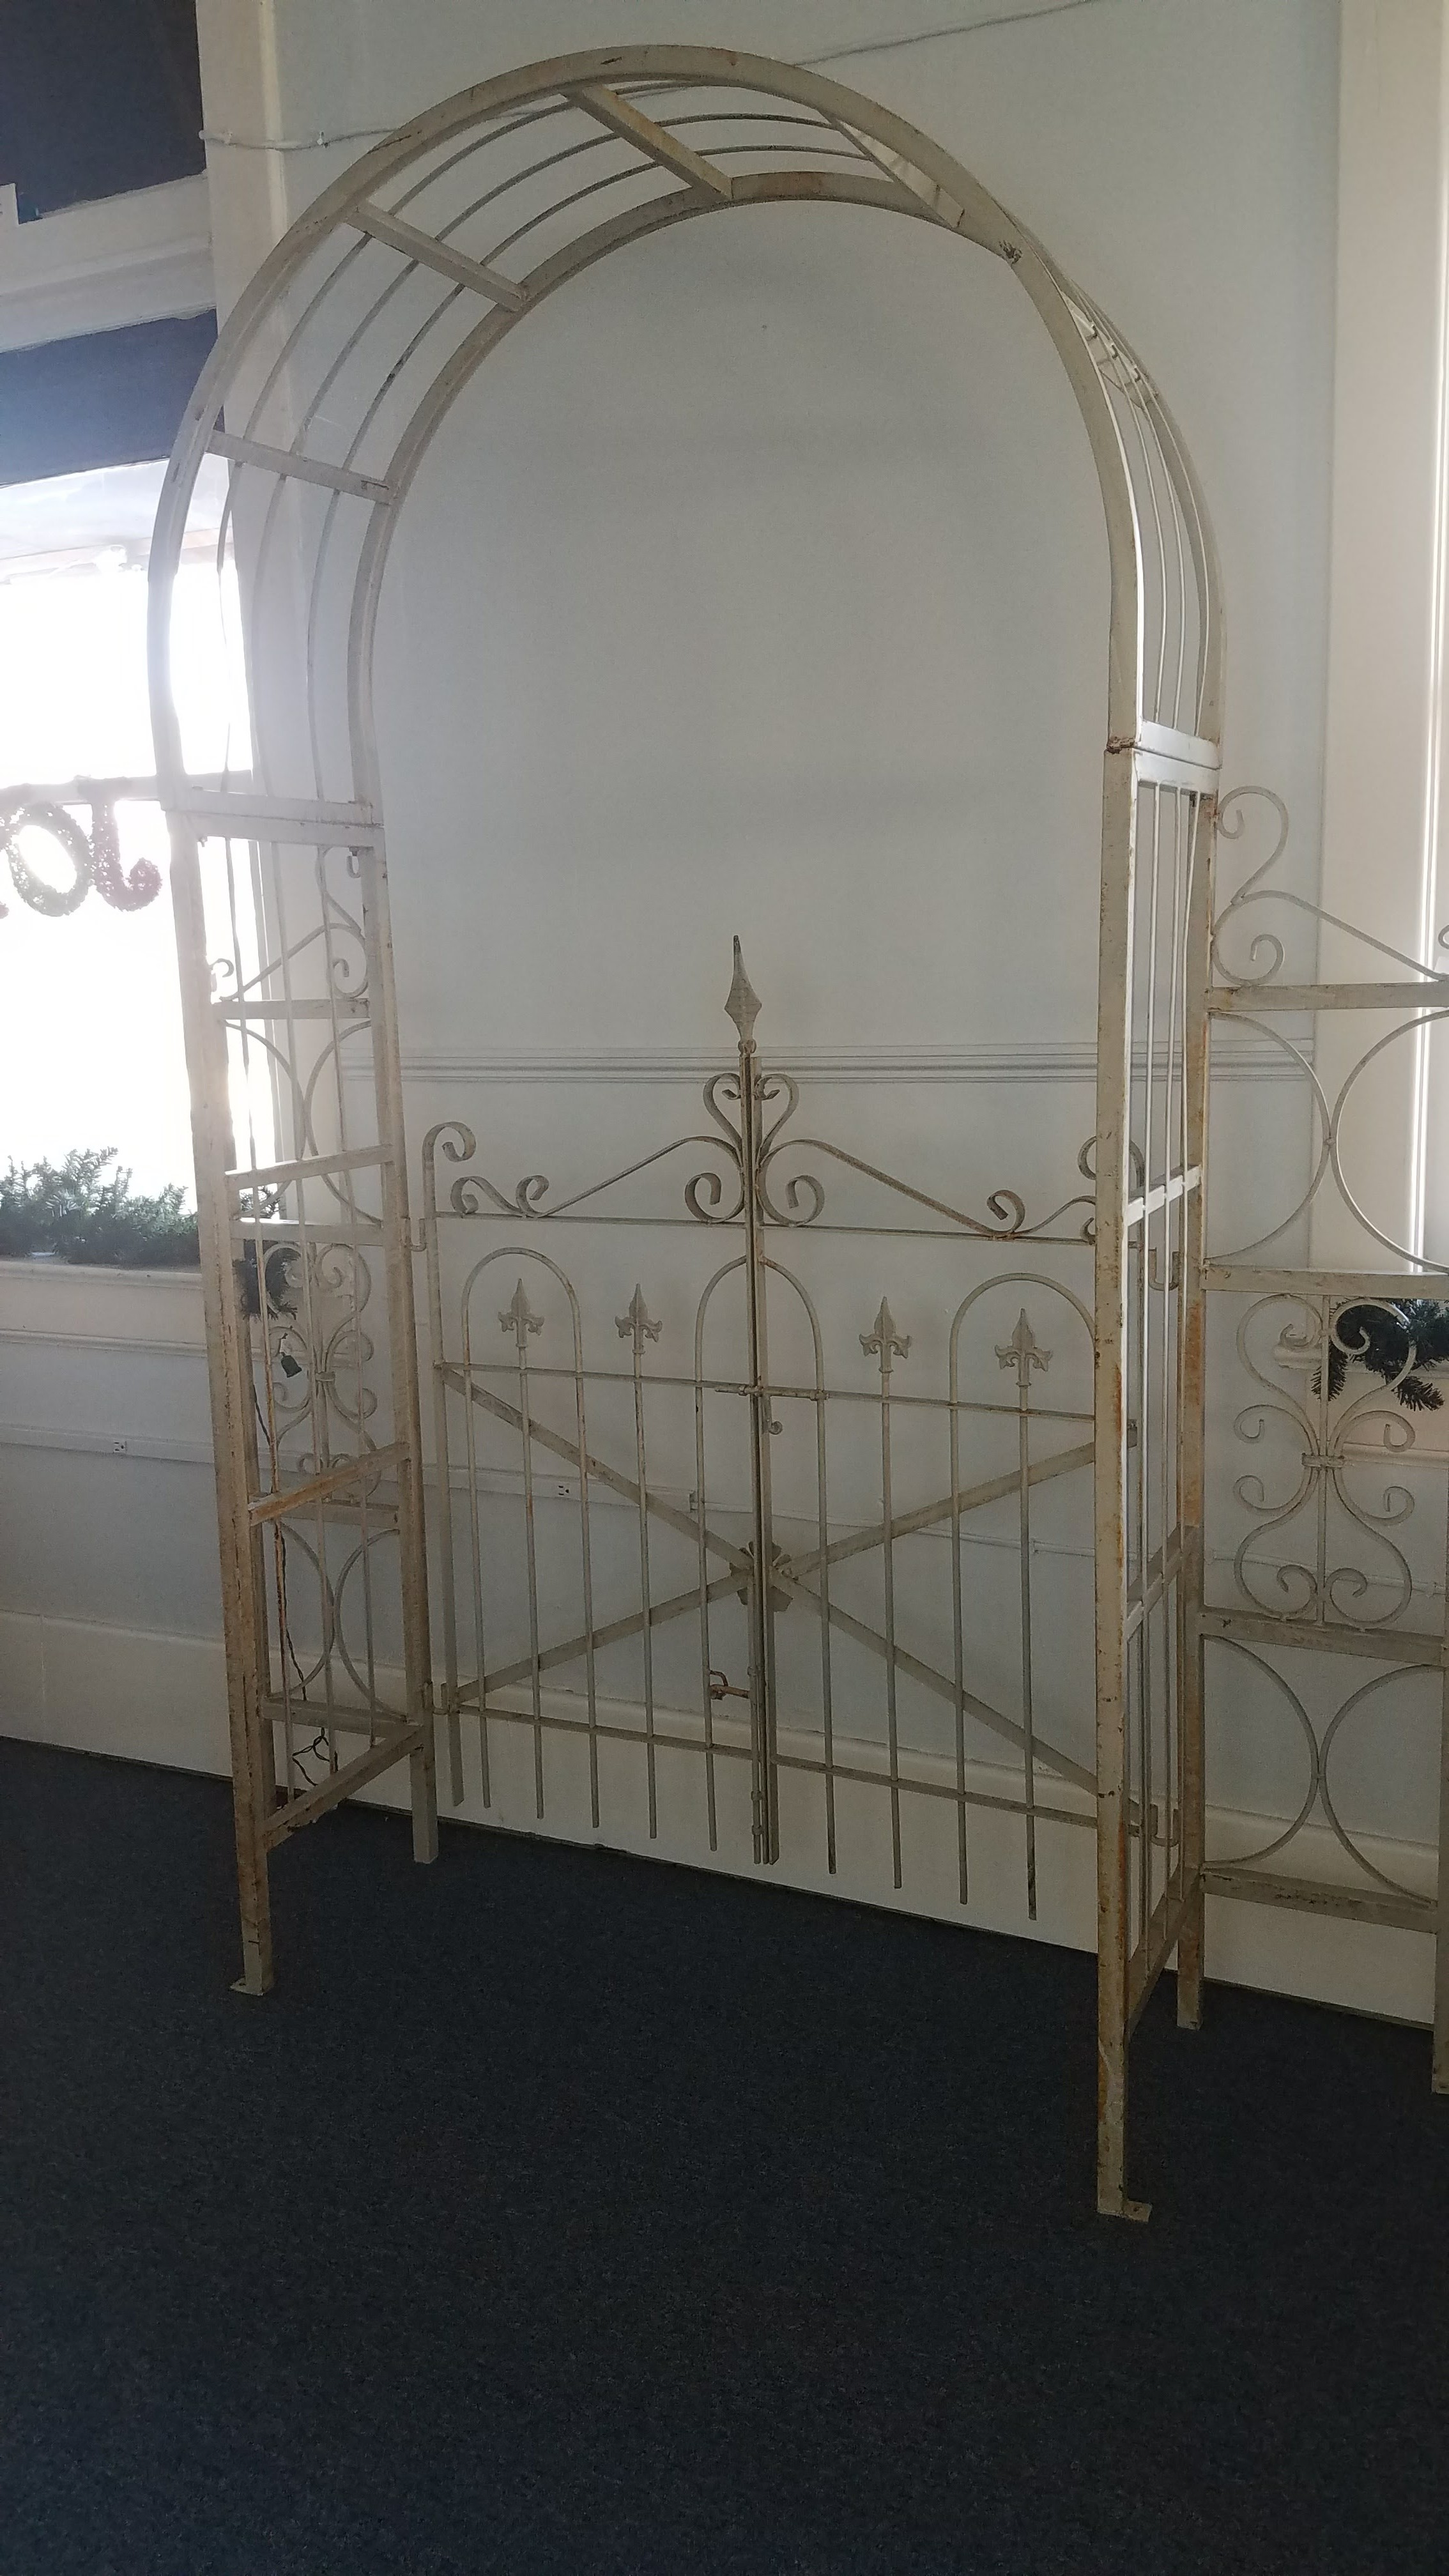 Garden Arbor with Gate Avail in Cream or Green $50 / Day